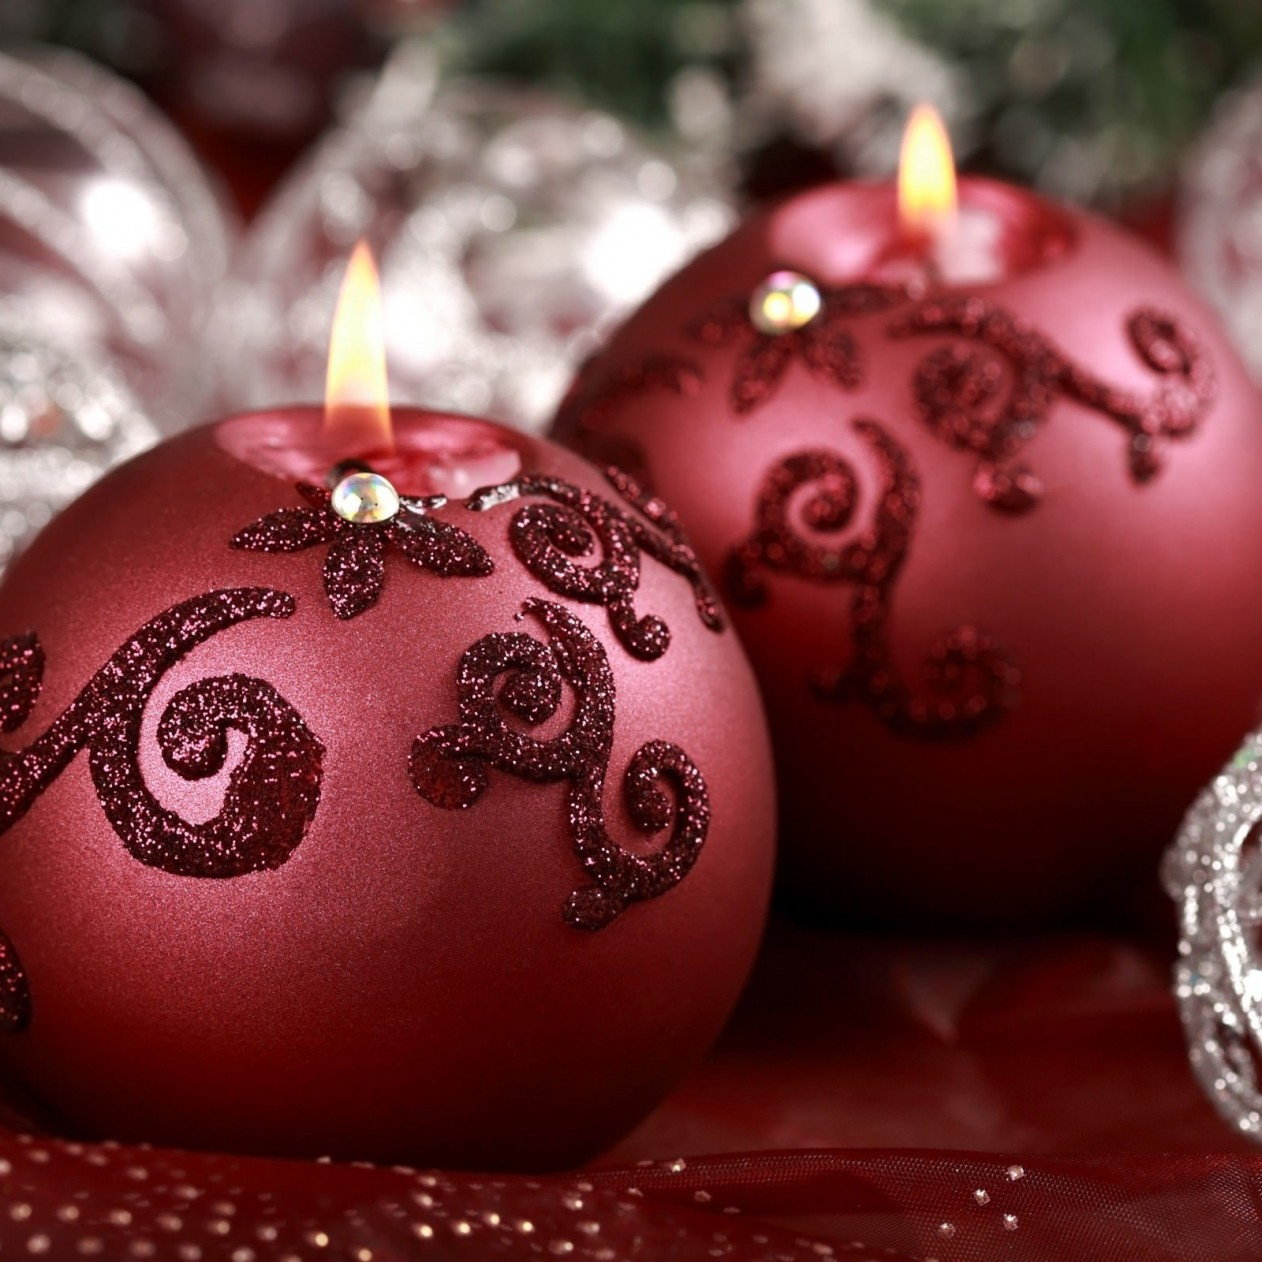 Red Christmas Ornament Ball Candles Wallpaper for Apple iPad mini